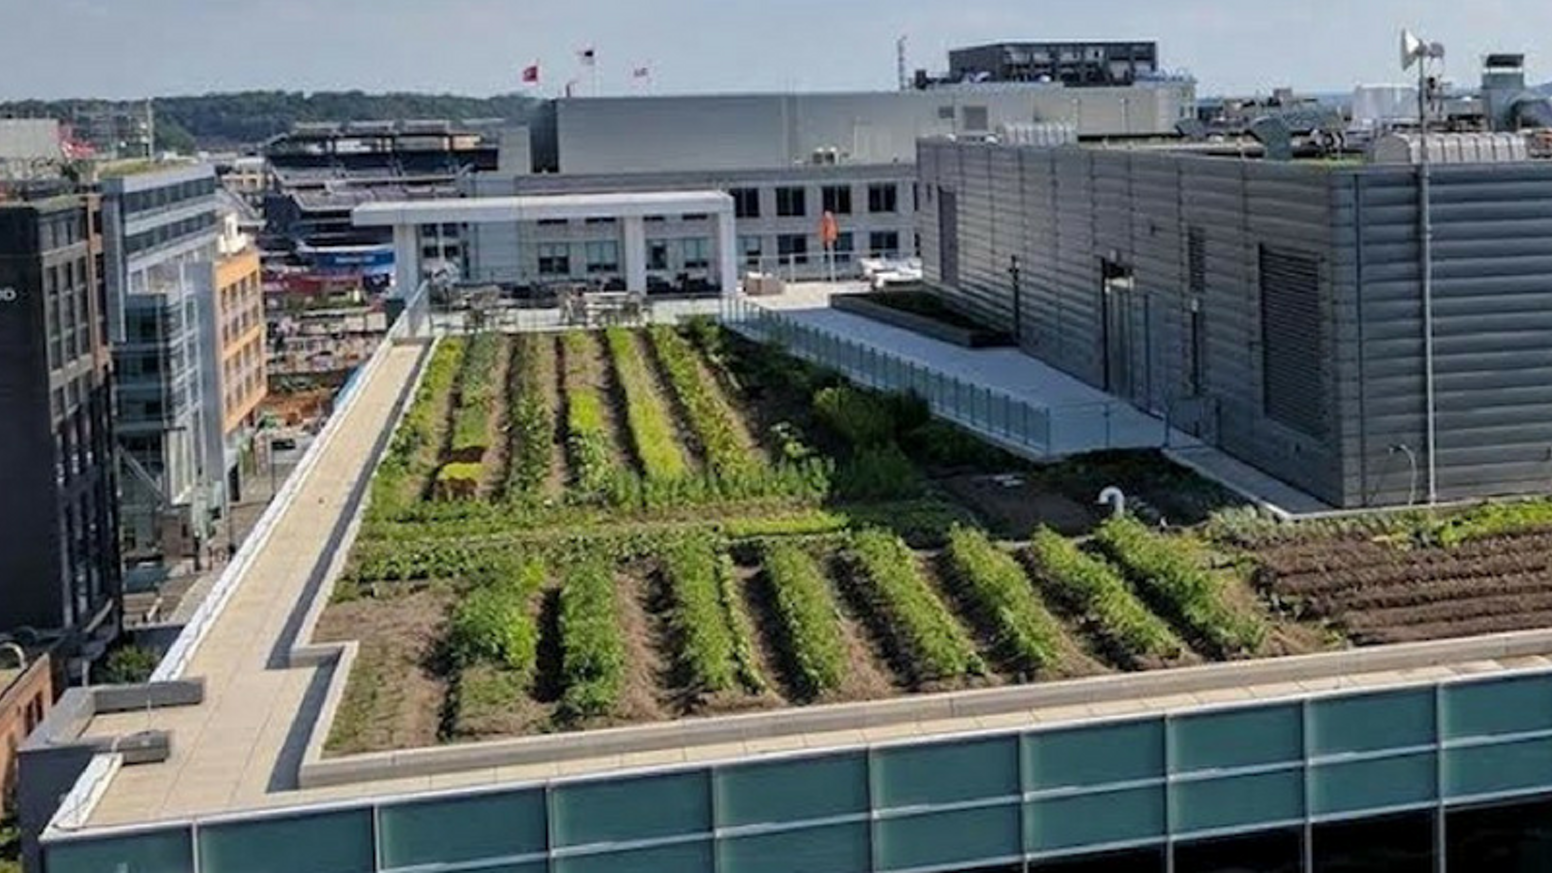 We're establishing agriculture as a fixture of city life by turning underutilized rooftops into productive farmland. Join us!